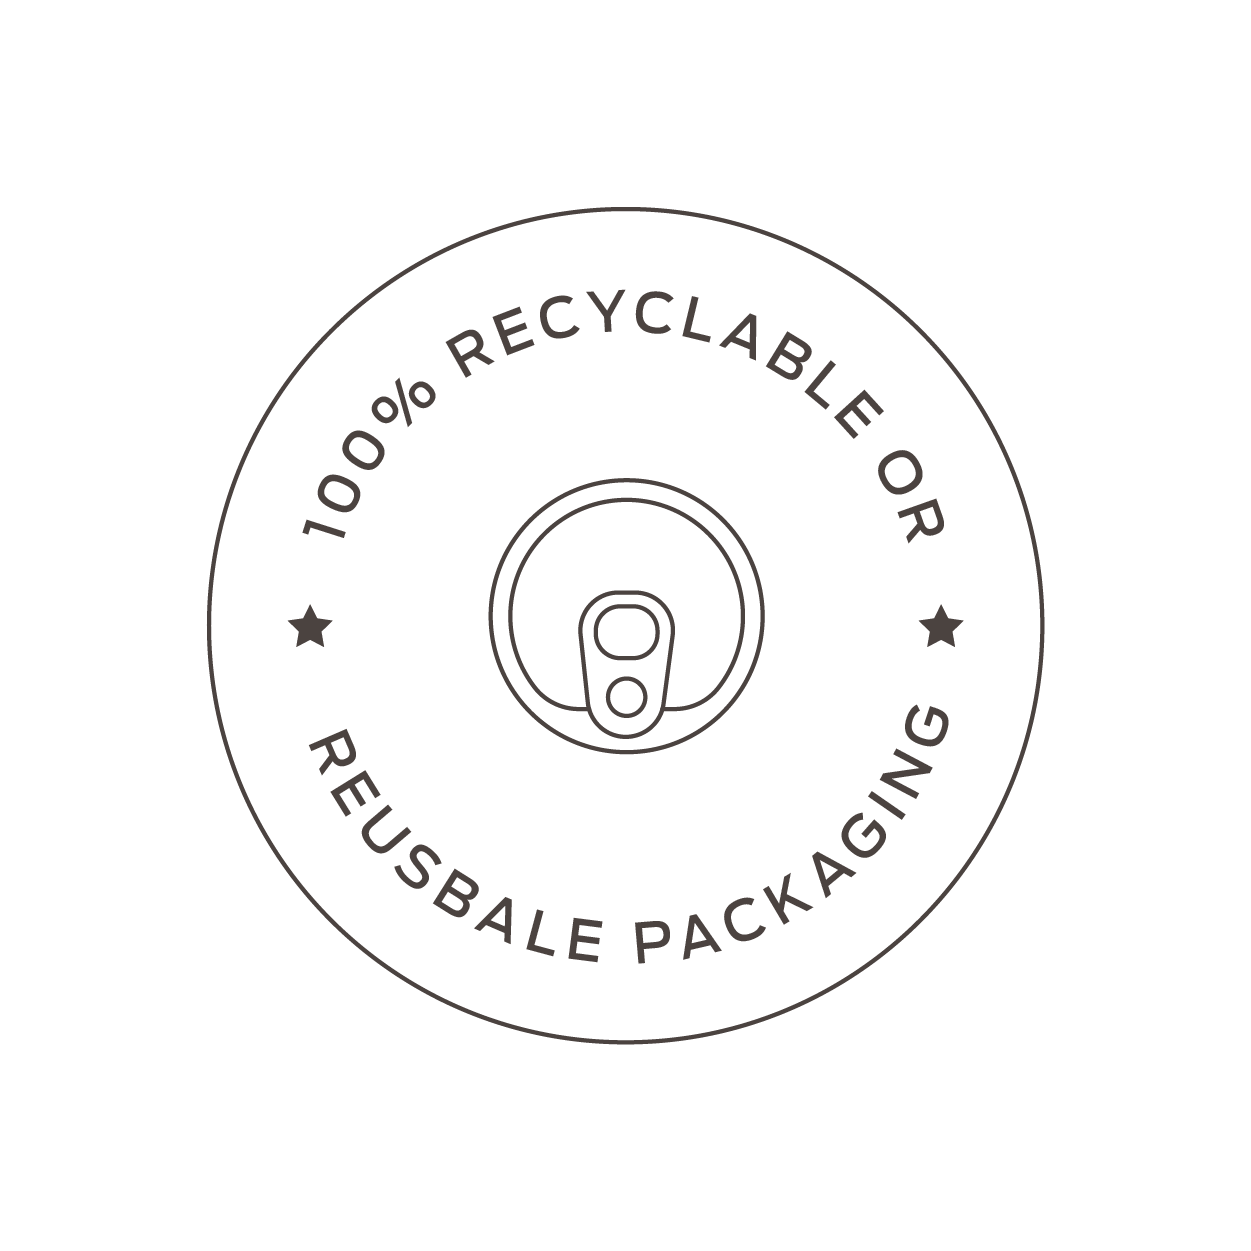 100% recyclable or reusable packaging